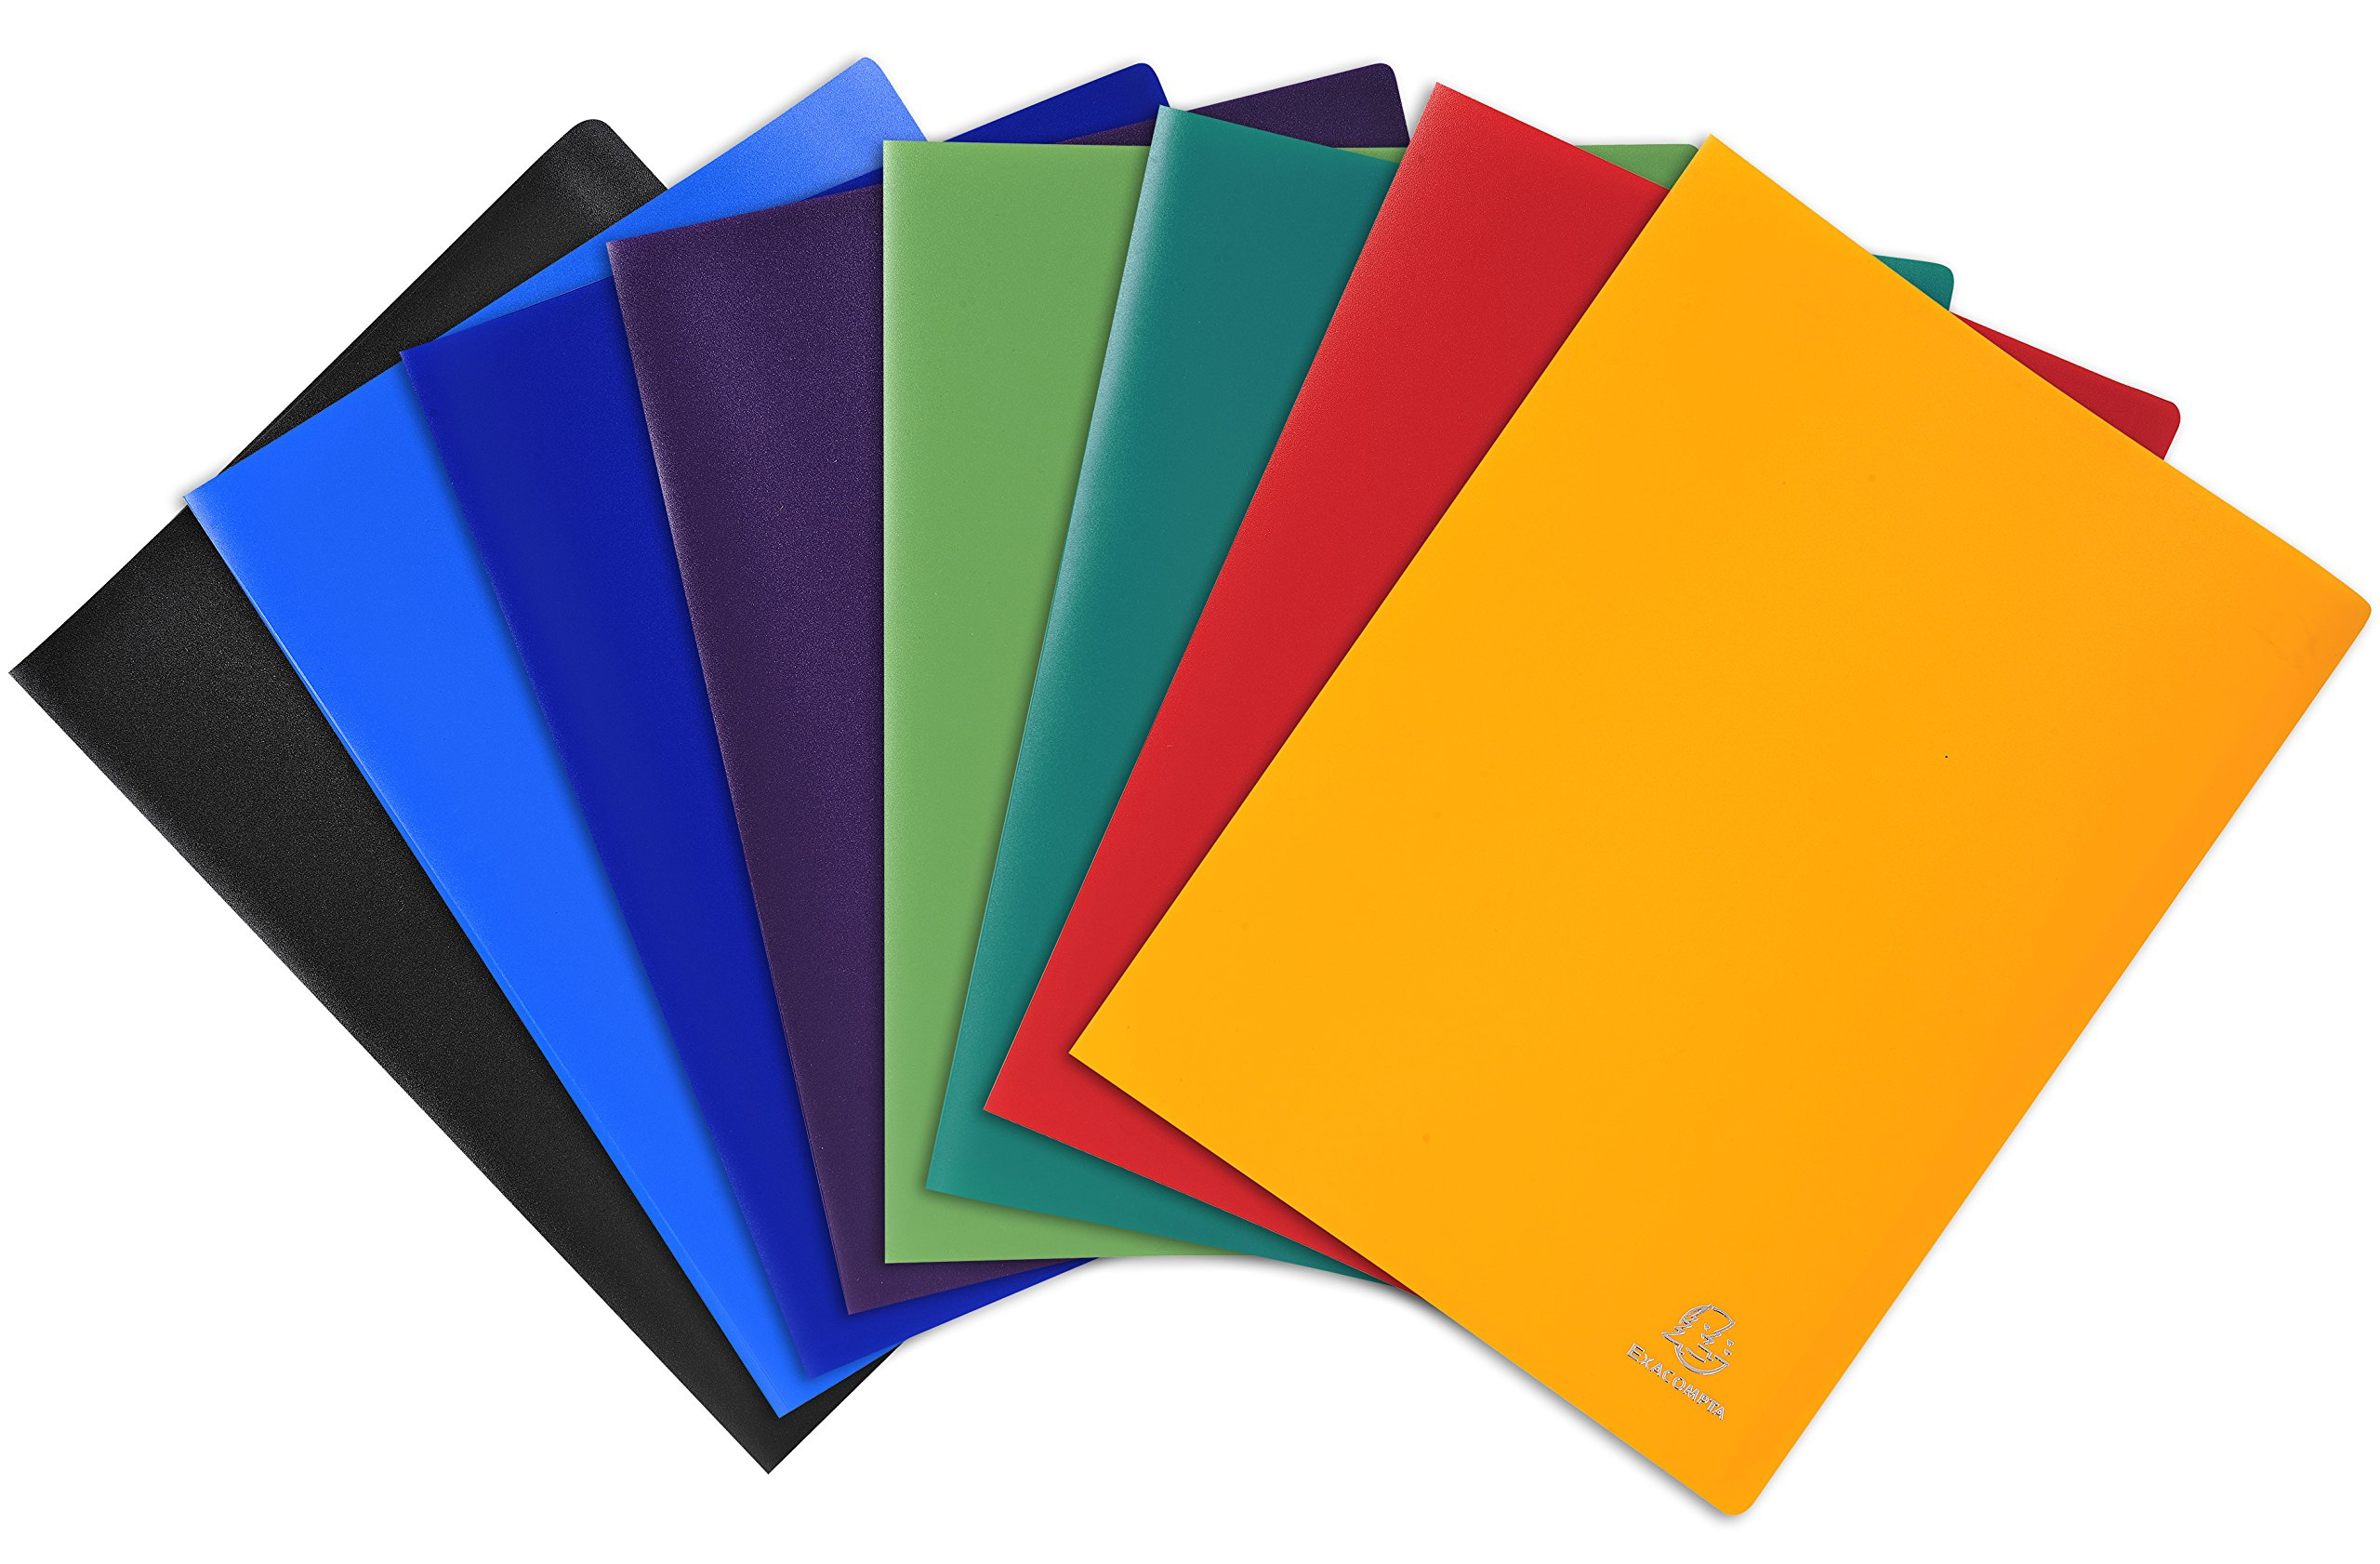 Exacompta Soft PP Welded Display Book, A4, 60 Pockets - Assorted Colours, Pack of 8 by Exacompta